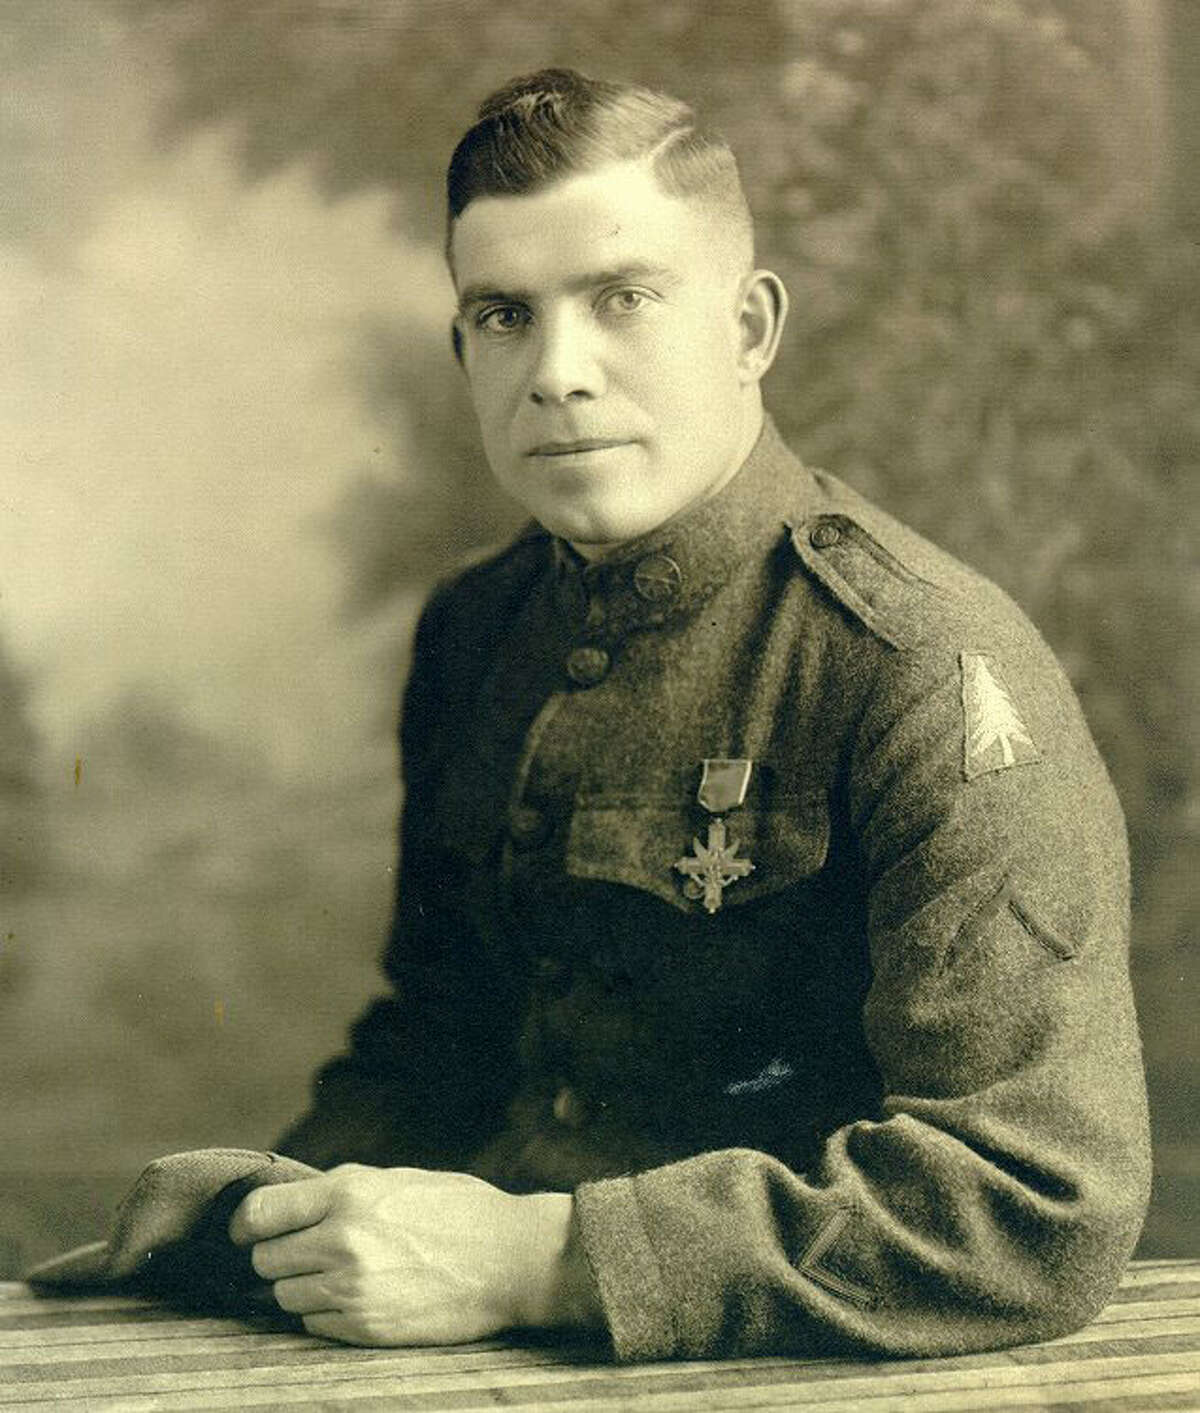 Cpl. Michael Carter, wearing the uniform of a signal corps soldier, was a member of the Headquarters Company, 361st Infantry, 91st Division. He was the grandfather of Brig. Gen. Theresa Carter, commander of Joint Base San Antonio.